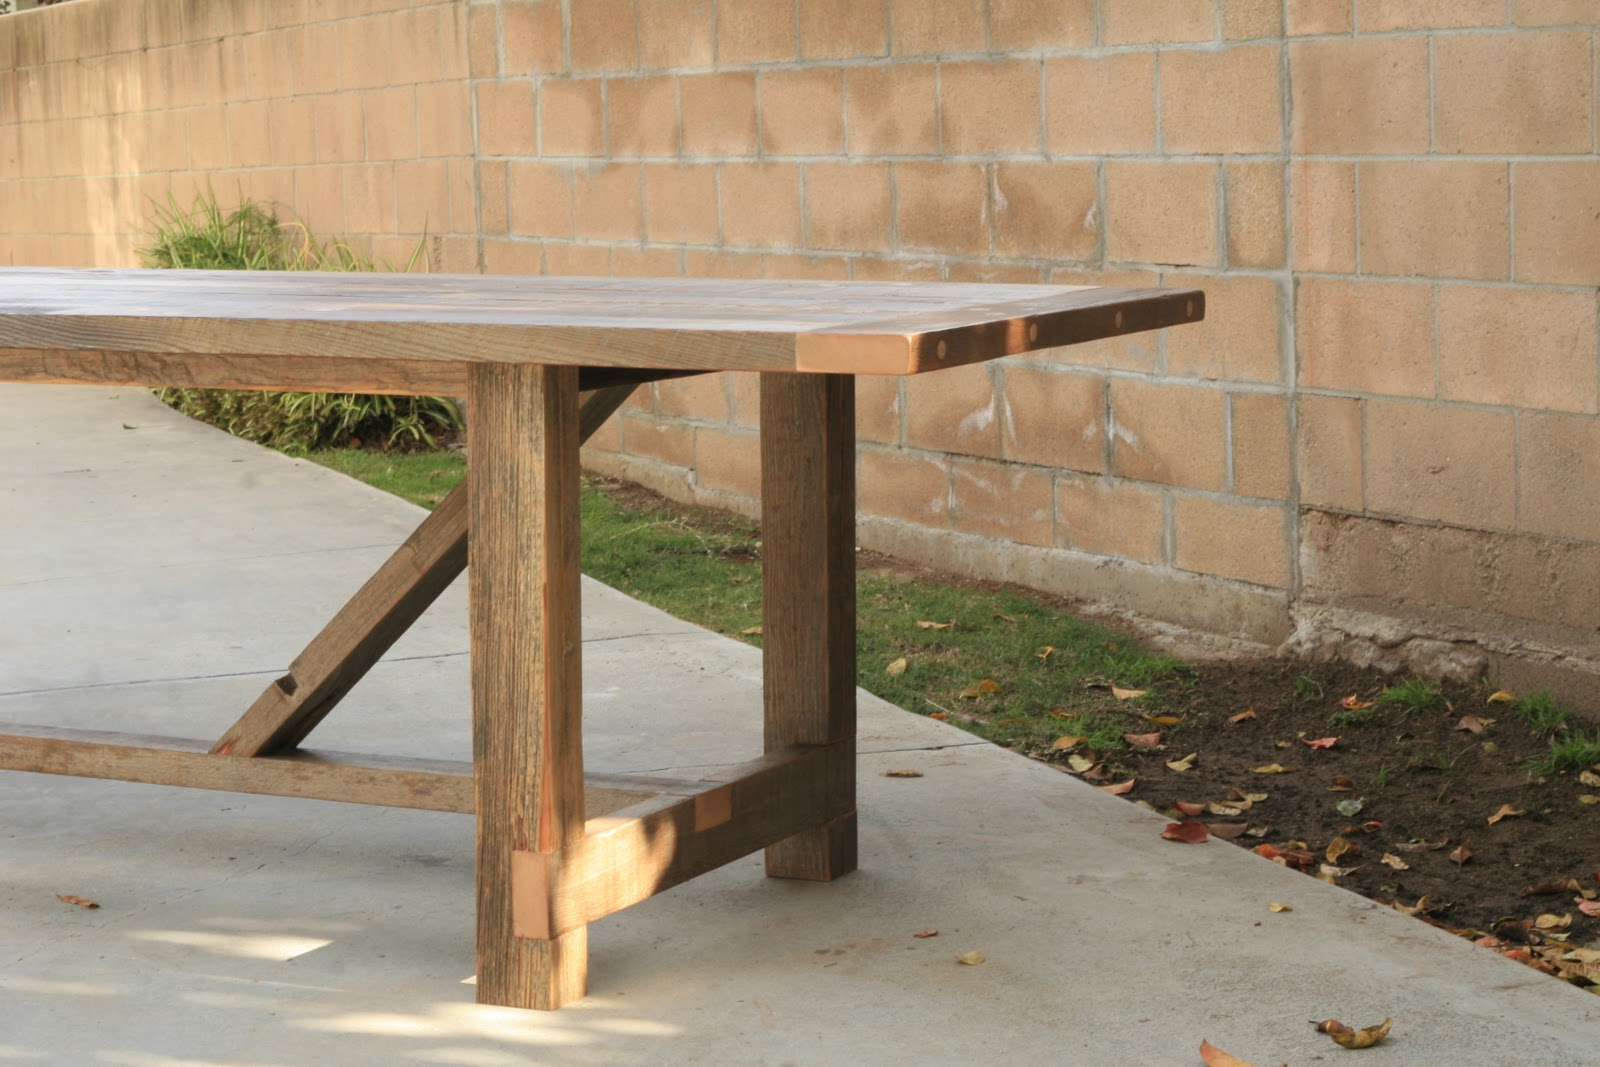 Arbor exchange reclaimed wood furniture 12 foot outdoor for 12 ft table